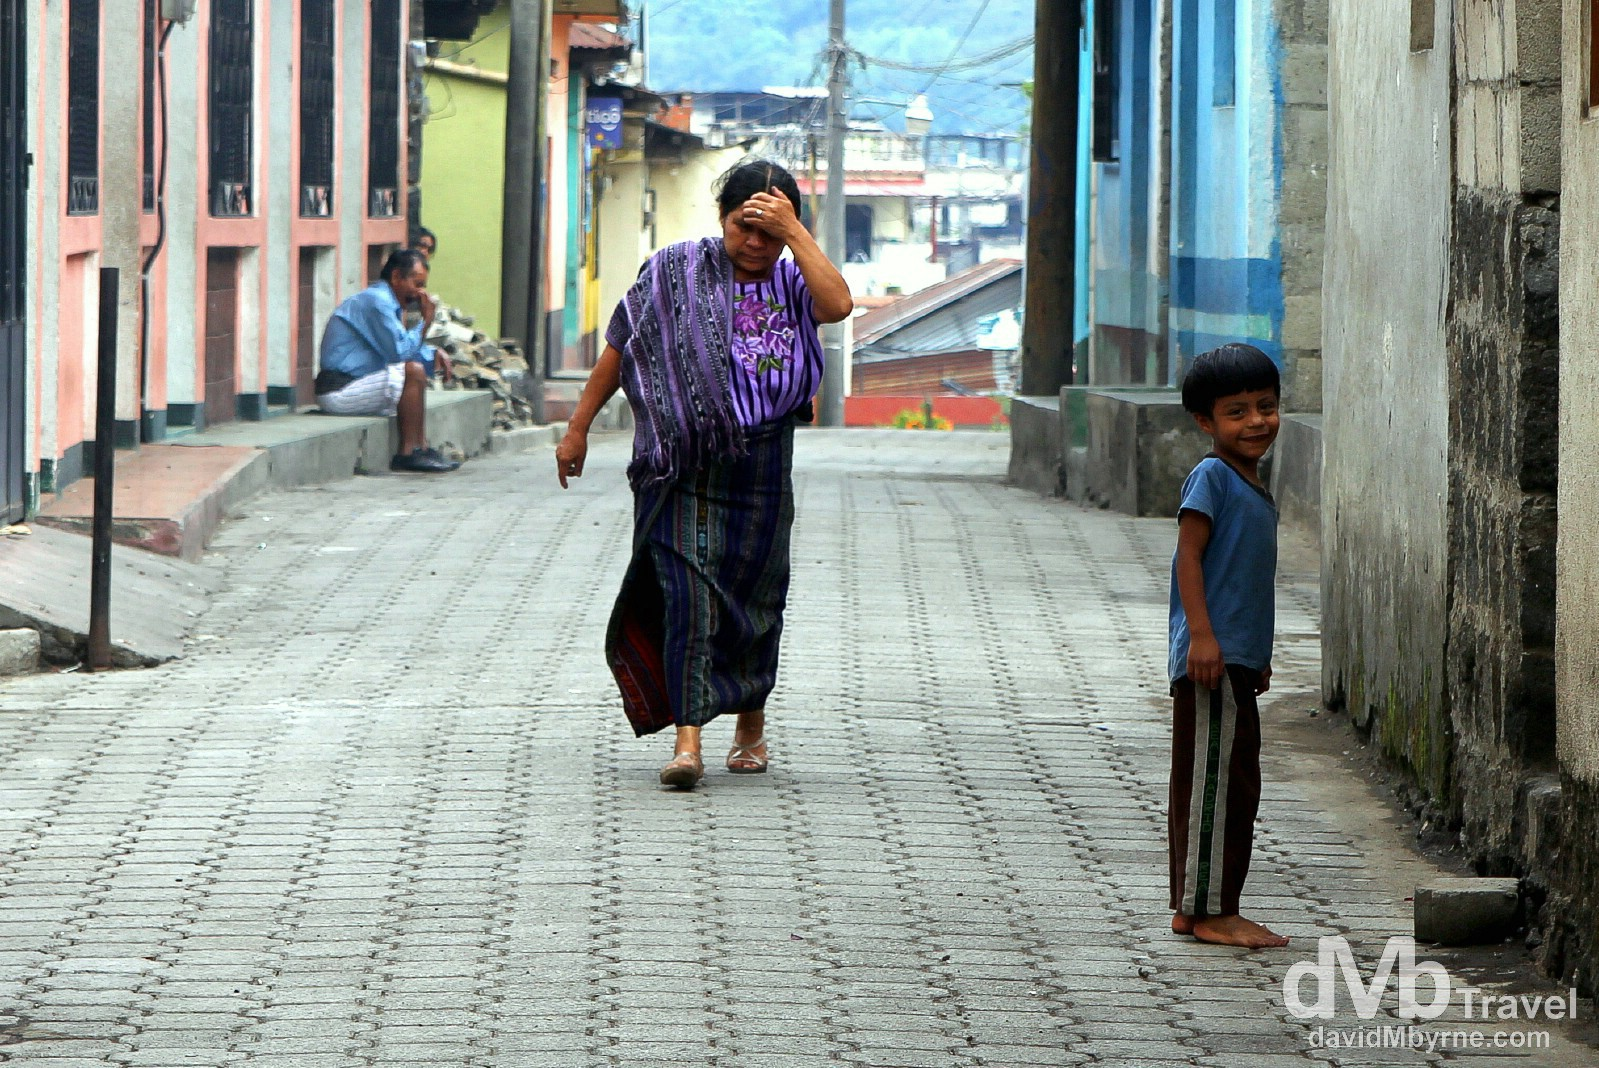 Smiles in a lane in Santiago Atitlan, Guatemala. May 24th 2013.